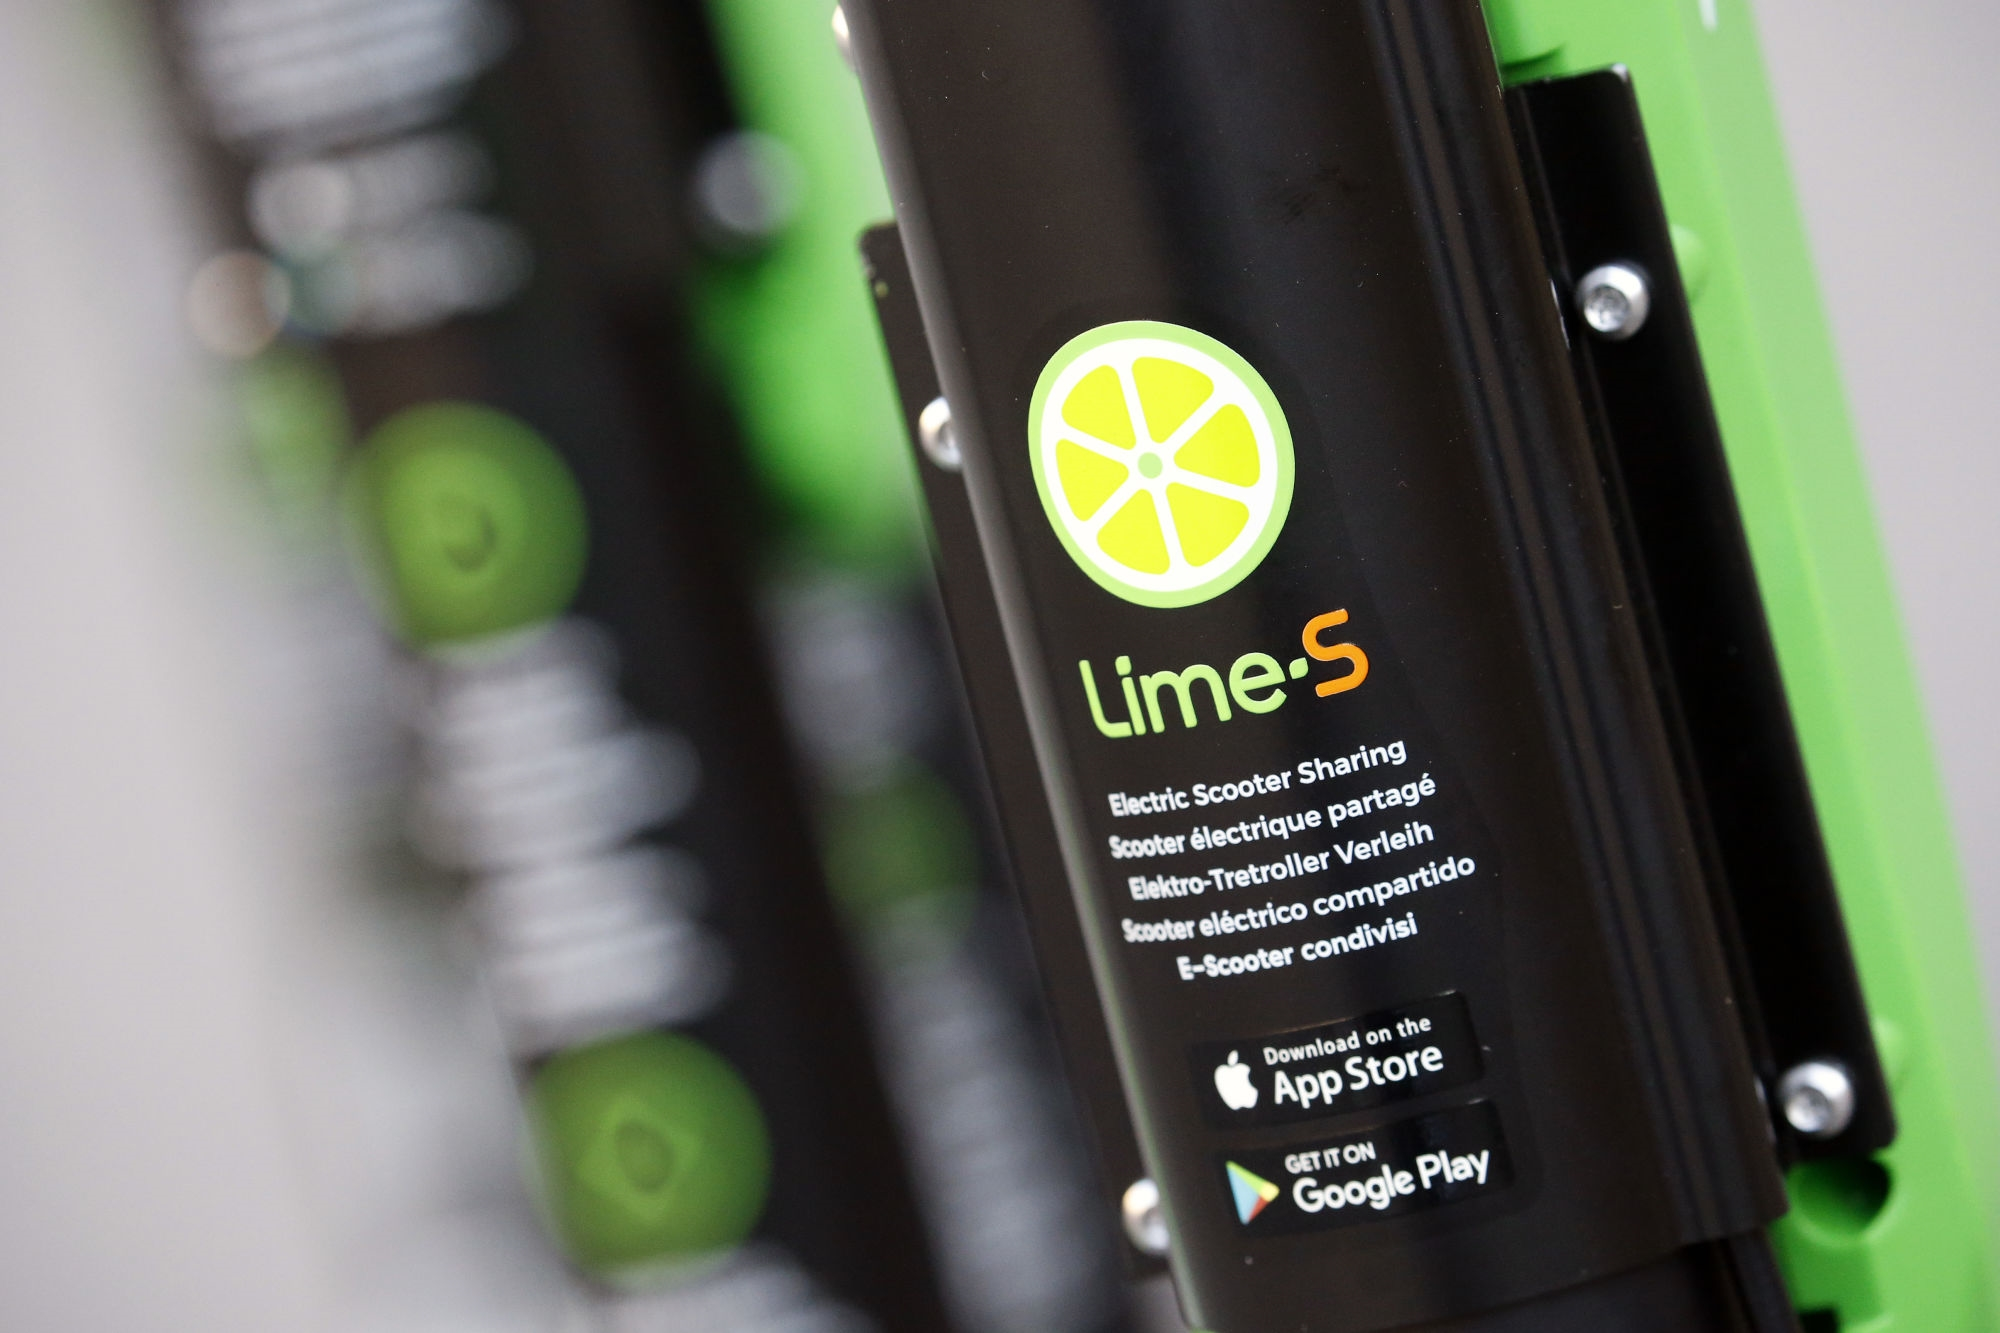 Lime removes some Segway scooters from fleet due to battery fires | DeviceDaily.com